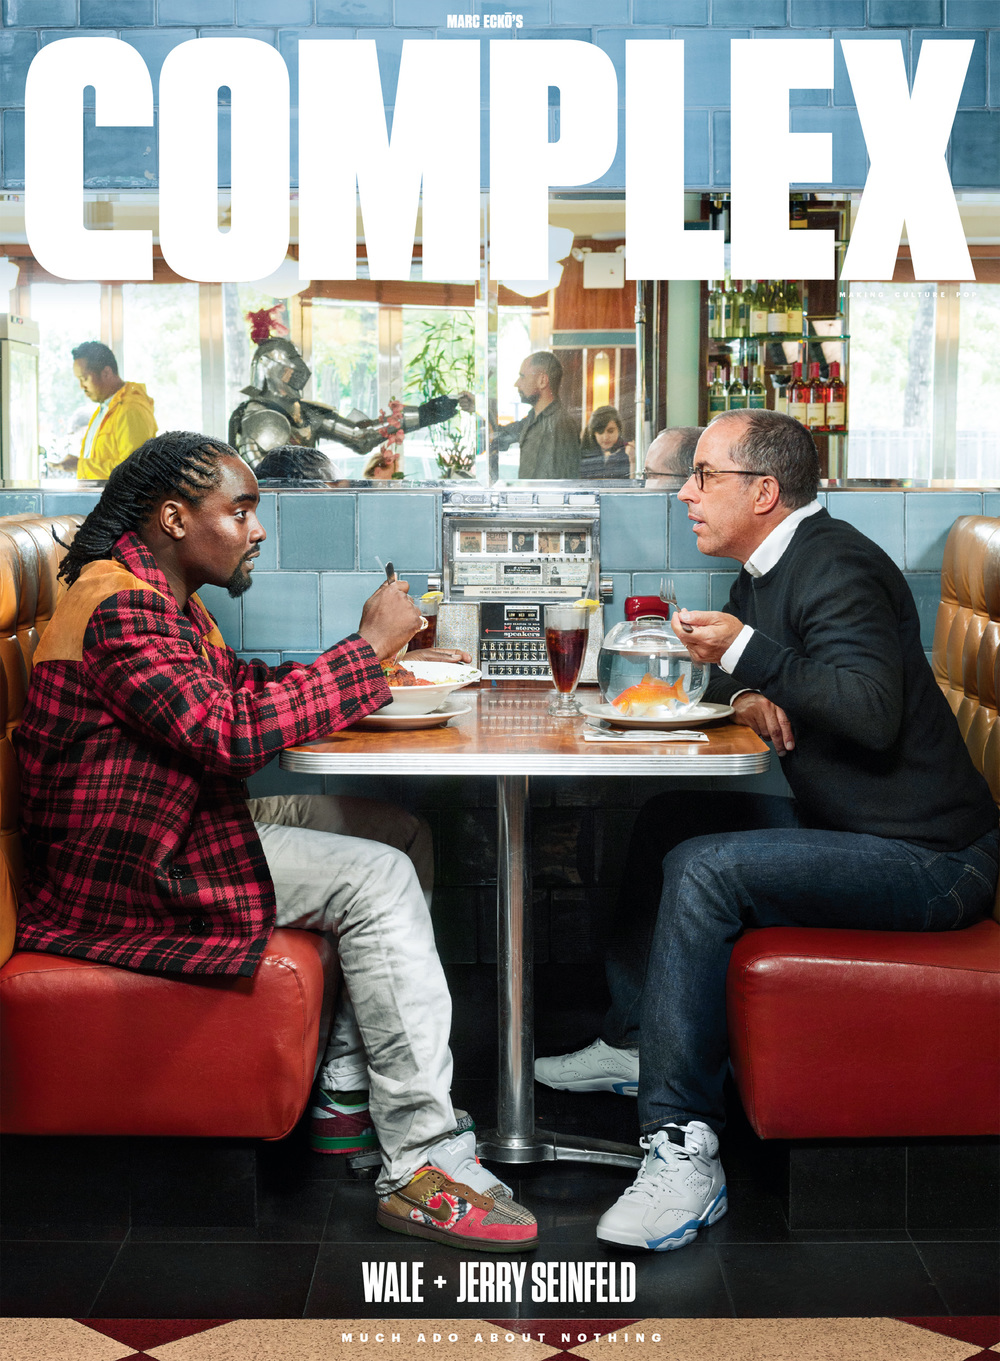 Wale & Jerry Seinfeld,  Complex